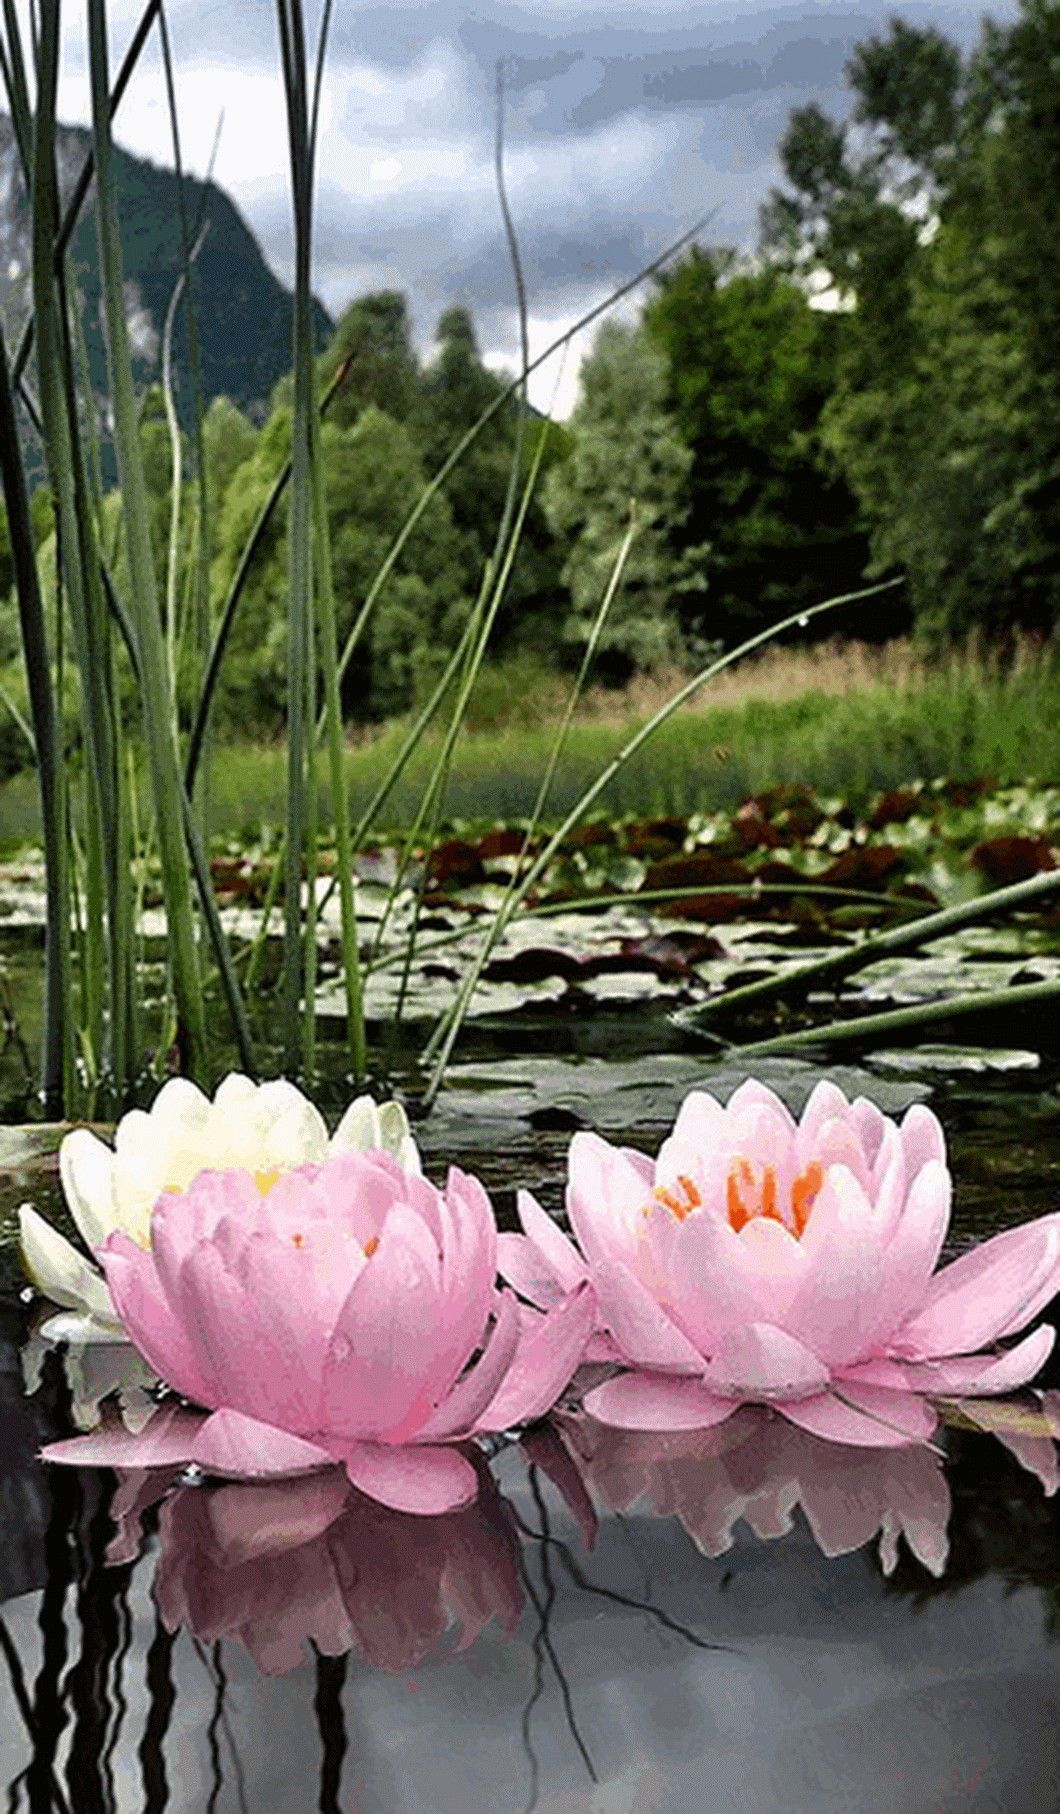 Pin By Faria Khan On Gift Pinterest Flowers Water Lilies And Plants